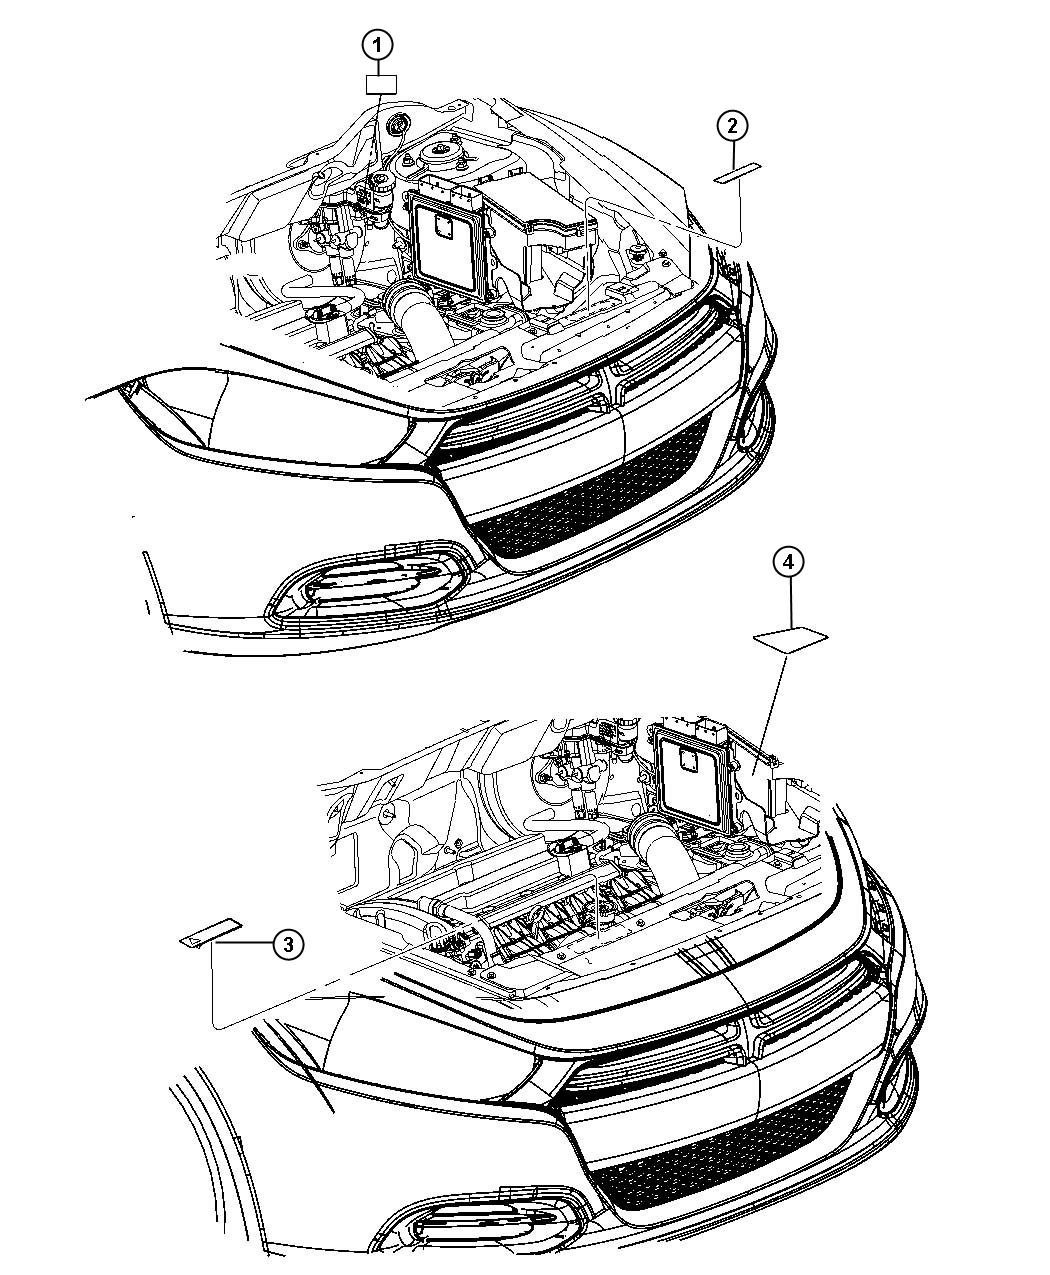 Dodge Dart Label Air Conditioning System Air